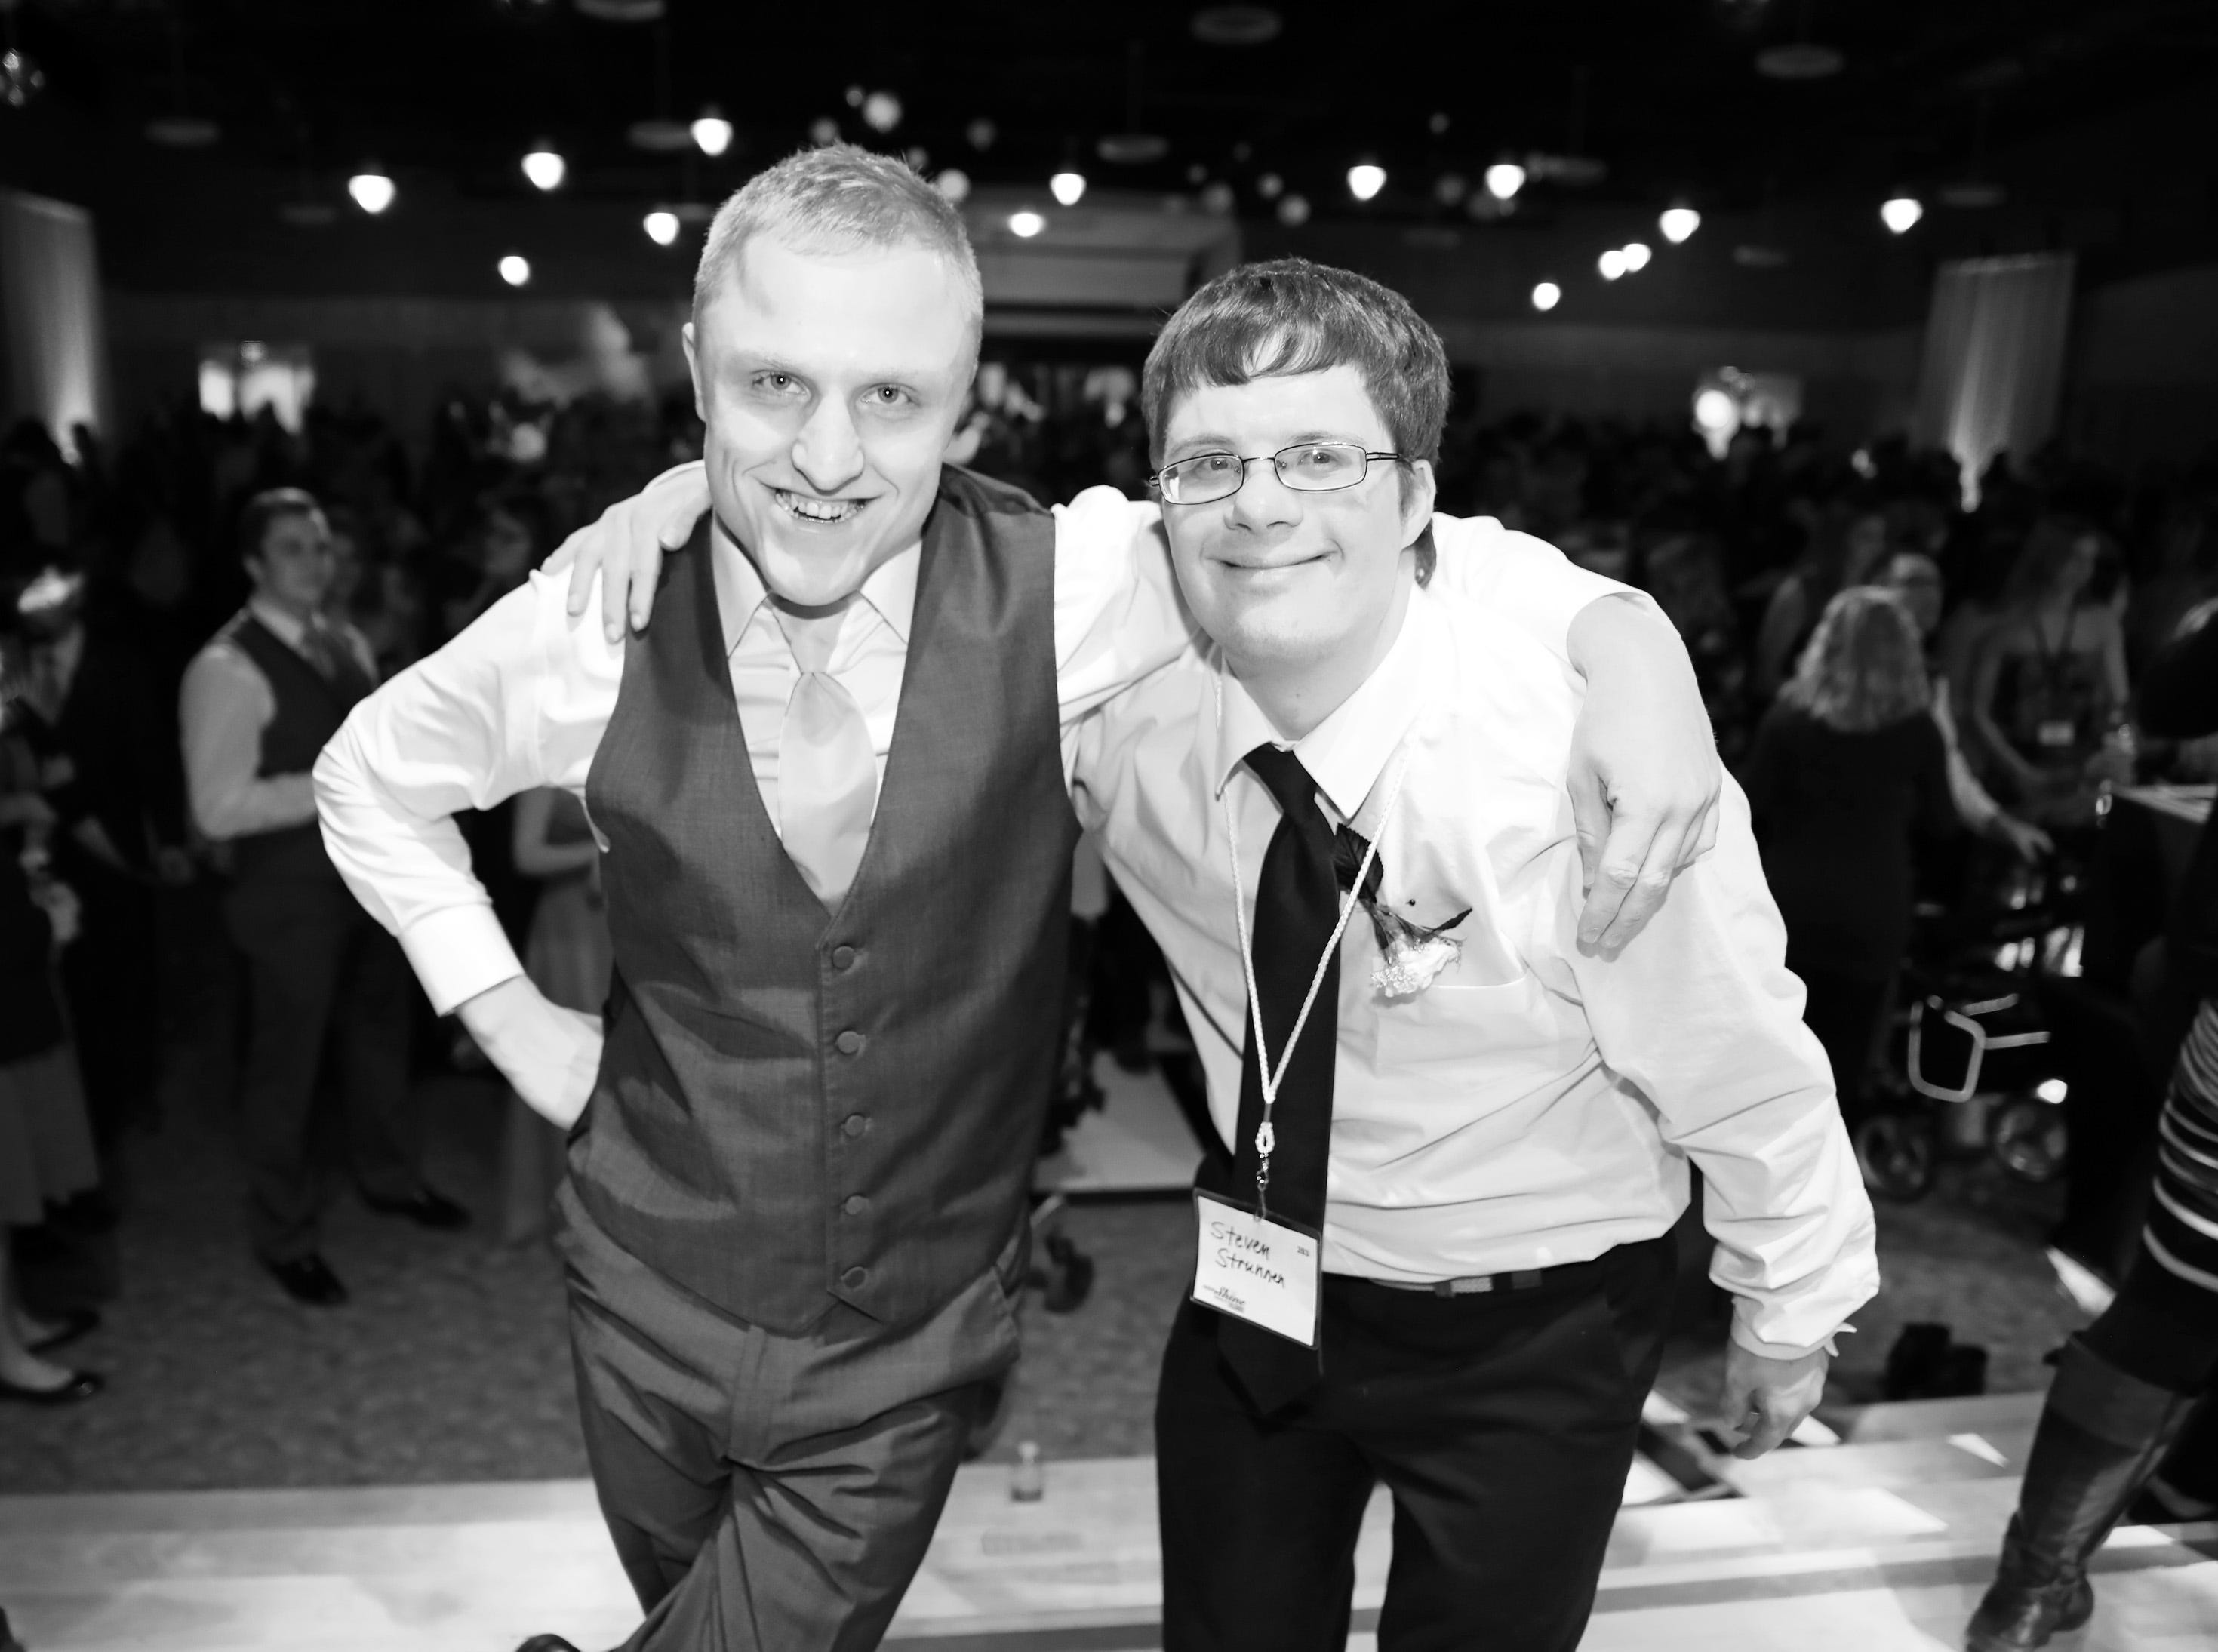 Cole Quinlin, left, and Steven Strennen of Ankeny take a short break from the dance floor during the Night to Shine event at Prairie Ridge Church in Ankeny on Friday, Feb. 8, 2019. Sponsored by the Tim Tebow Foundation, the event for adults with special needs features a prom-like atmosphere with dancing, limo rides, food and more.